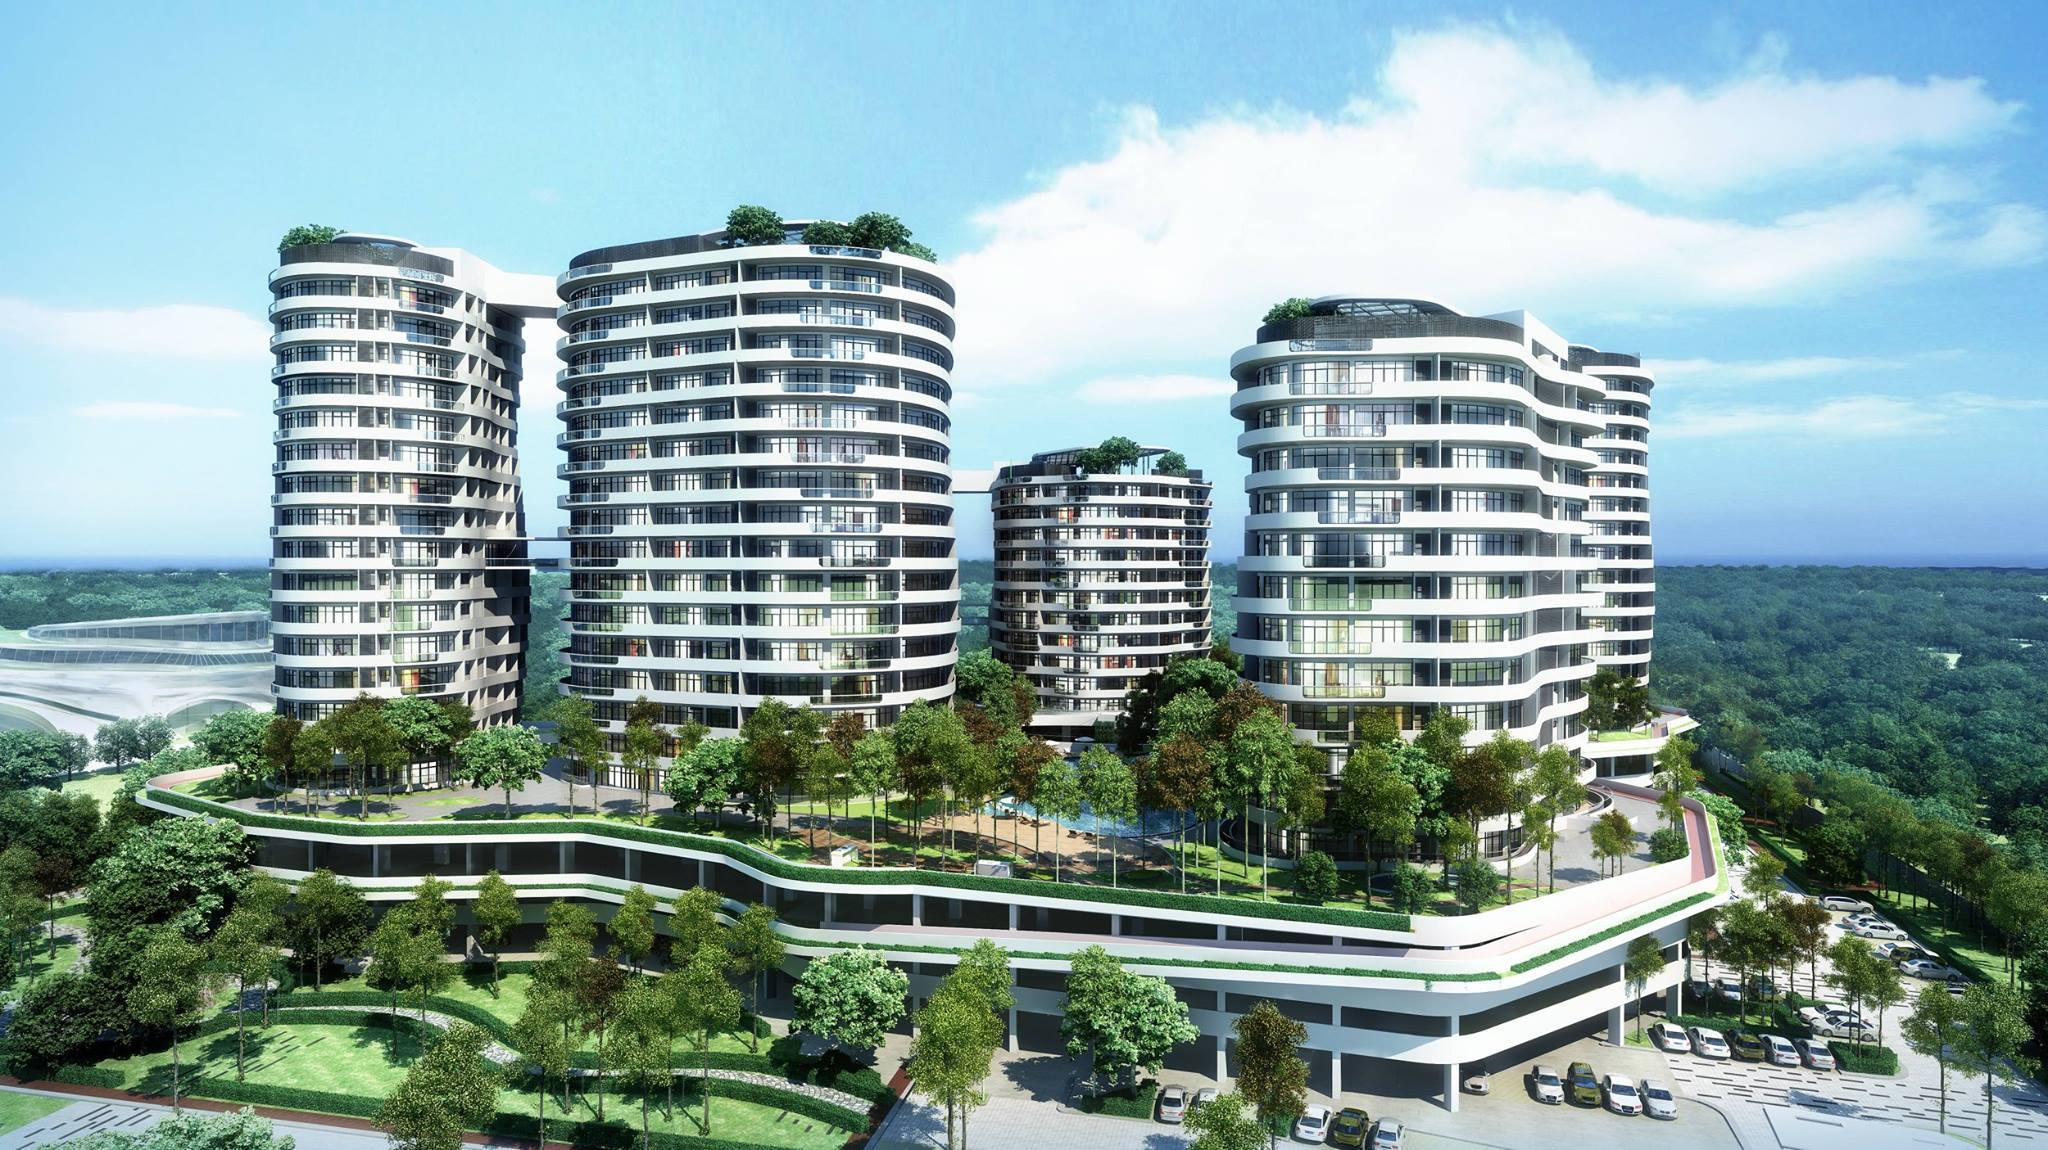 Puchong south house for sale o2 residence video cover